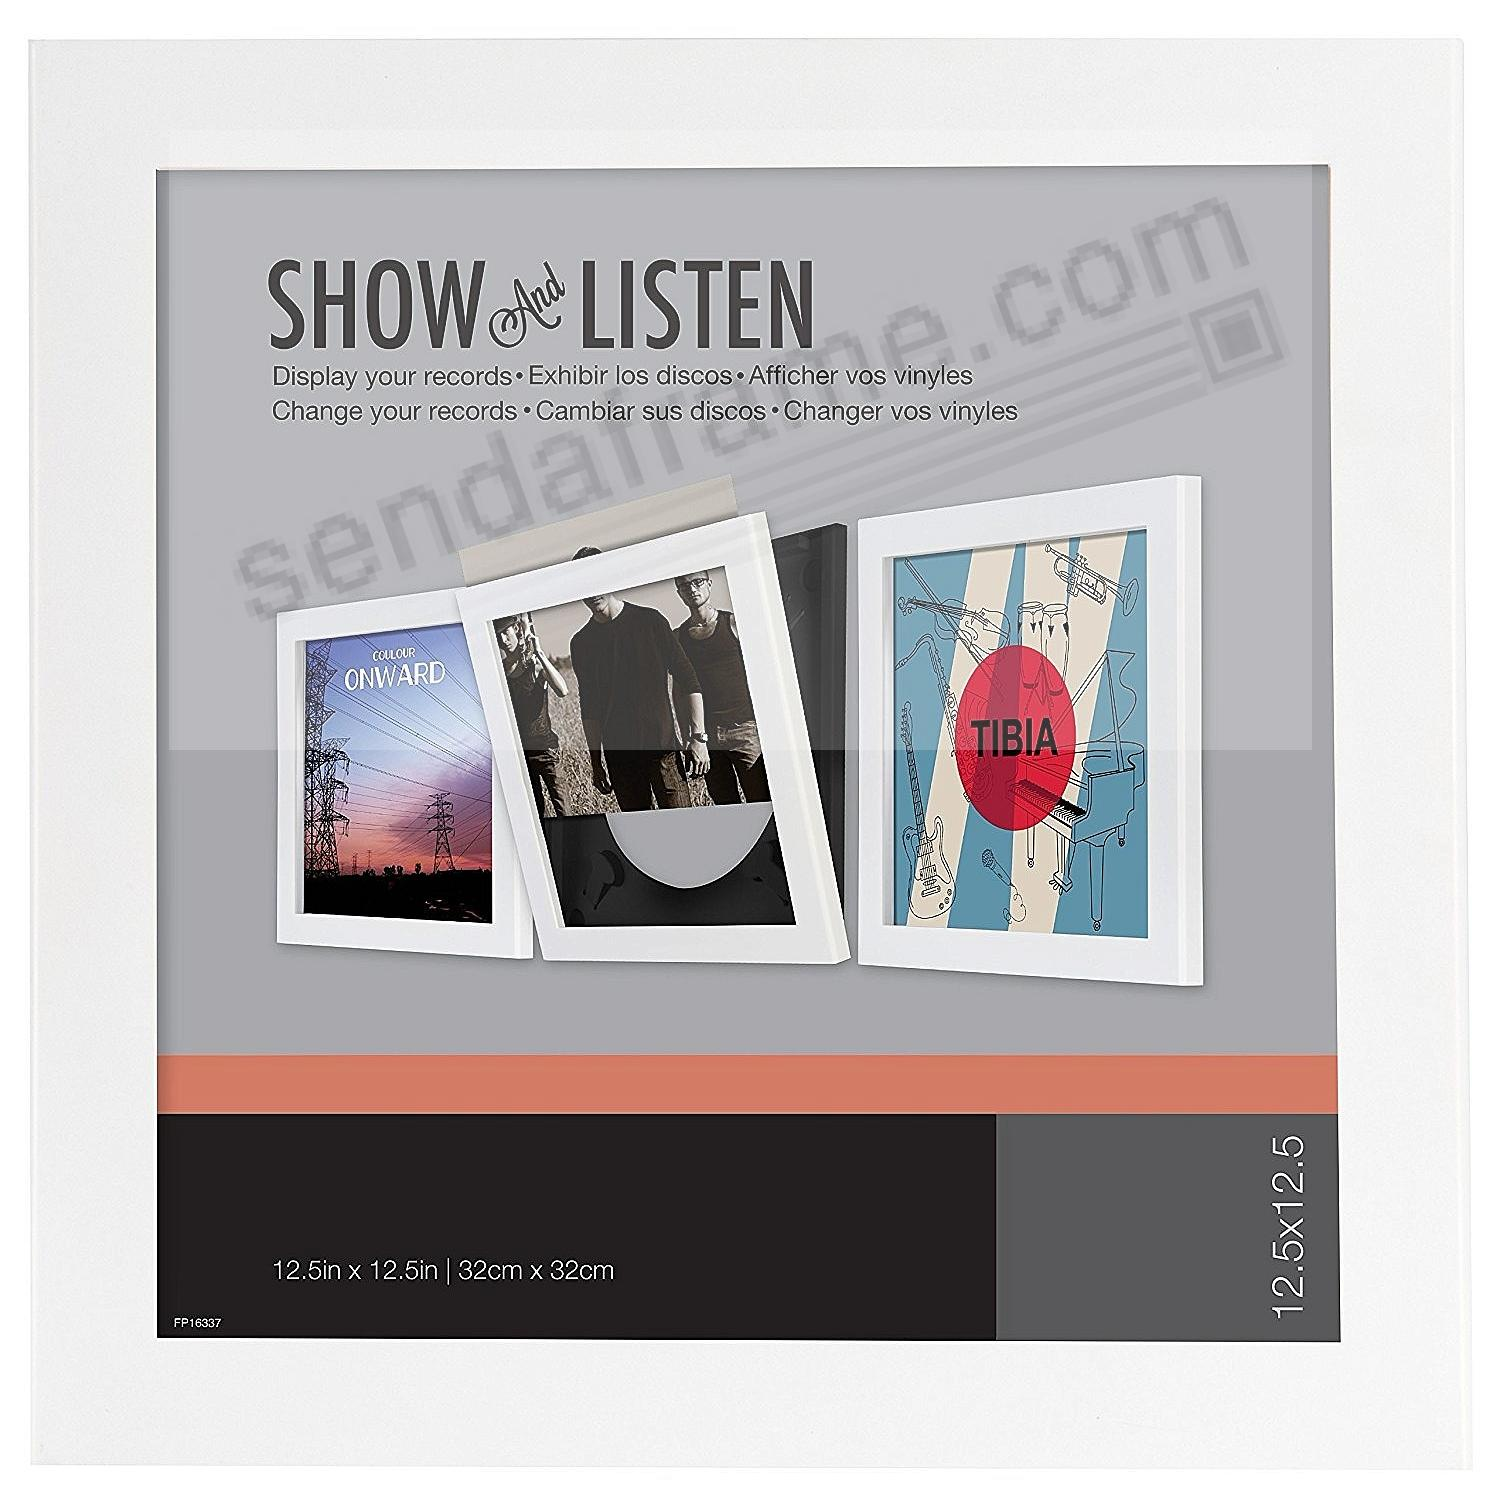 SHOW AND LISTEN Vinyl Record frame by SNAP™